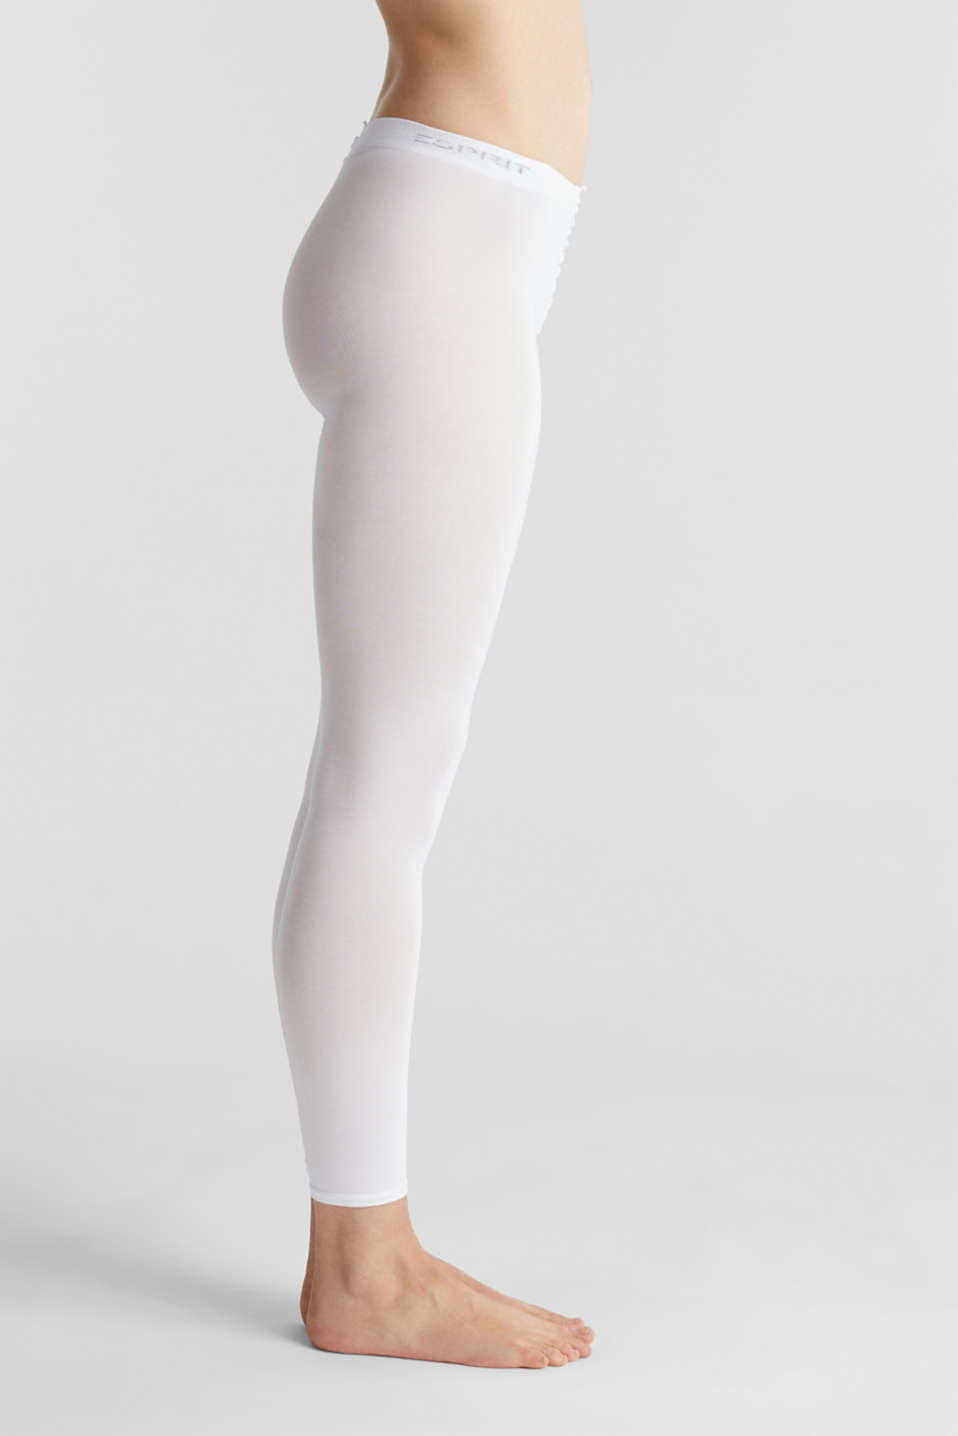 Esprit - Opaque leggings, blended cotton